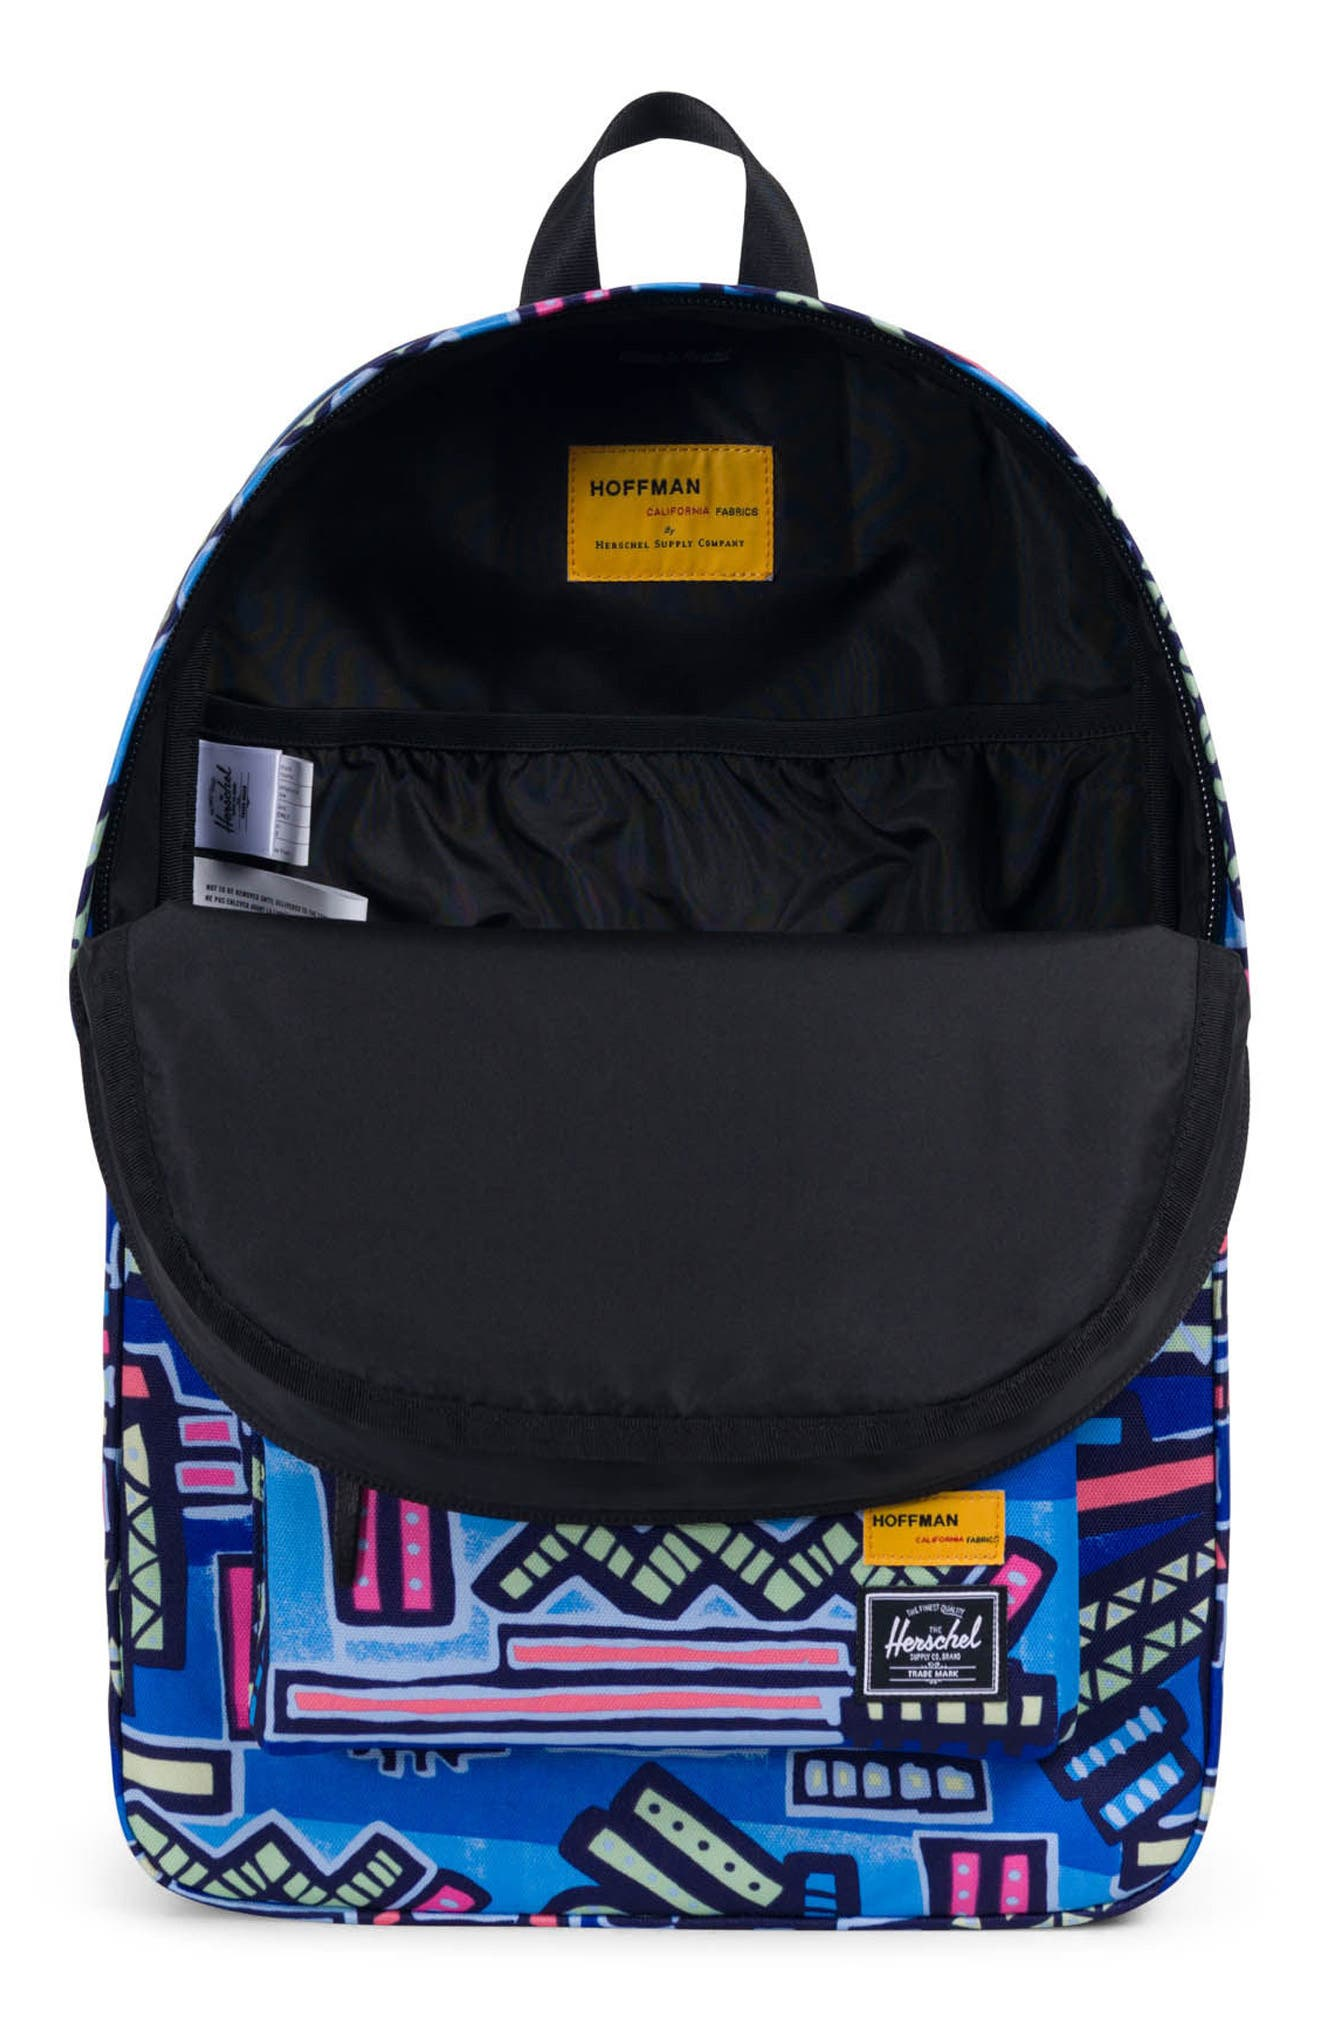 Winlaw - Hoffman Backpack,                             Alternate thumbnail 4, color,                             Abstract Geo Blue